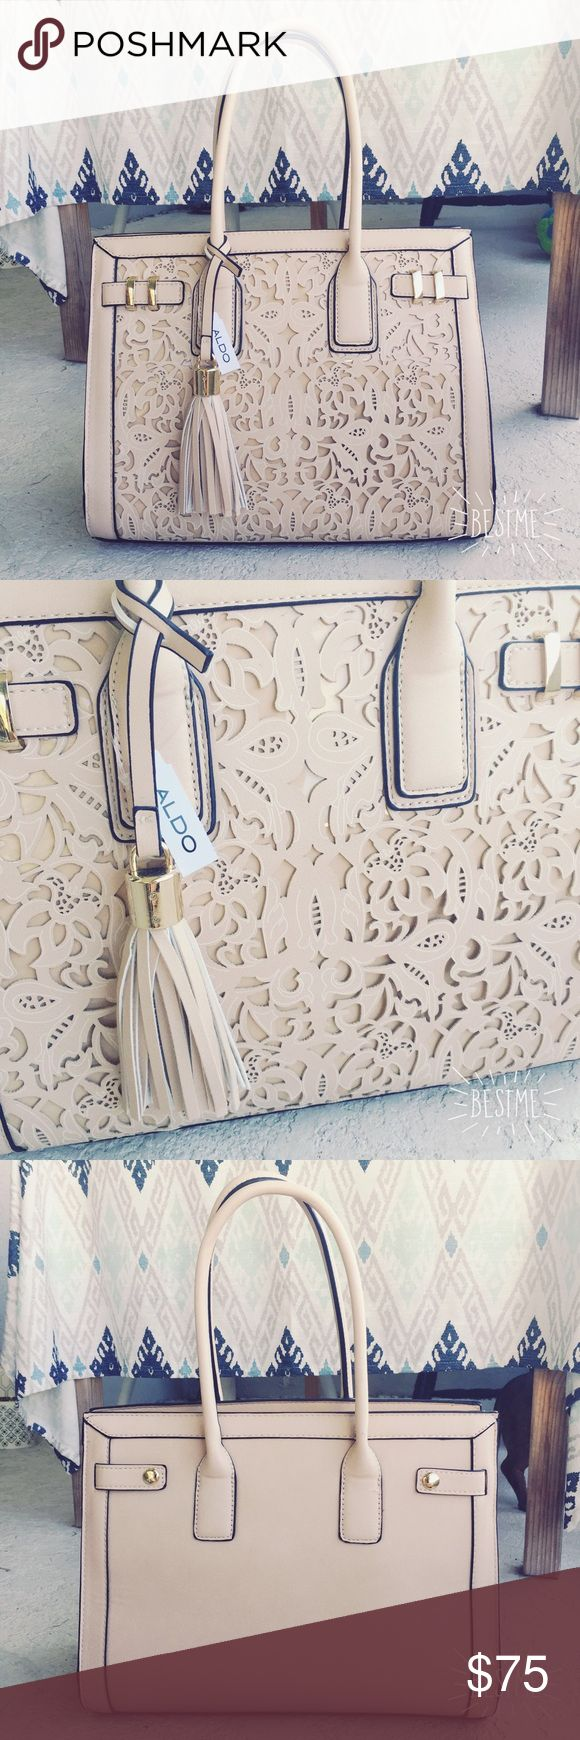 Also handbag with fringe charm, BNWT Also handbag with fringe charm, BNWT! Item is brand new with tags and never used. Comes with adjustable shoulder/crossbody strap. No trades. Aldo Bags Satchels